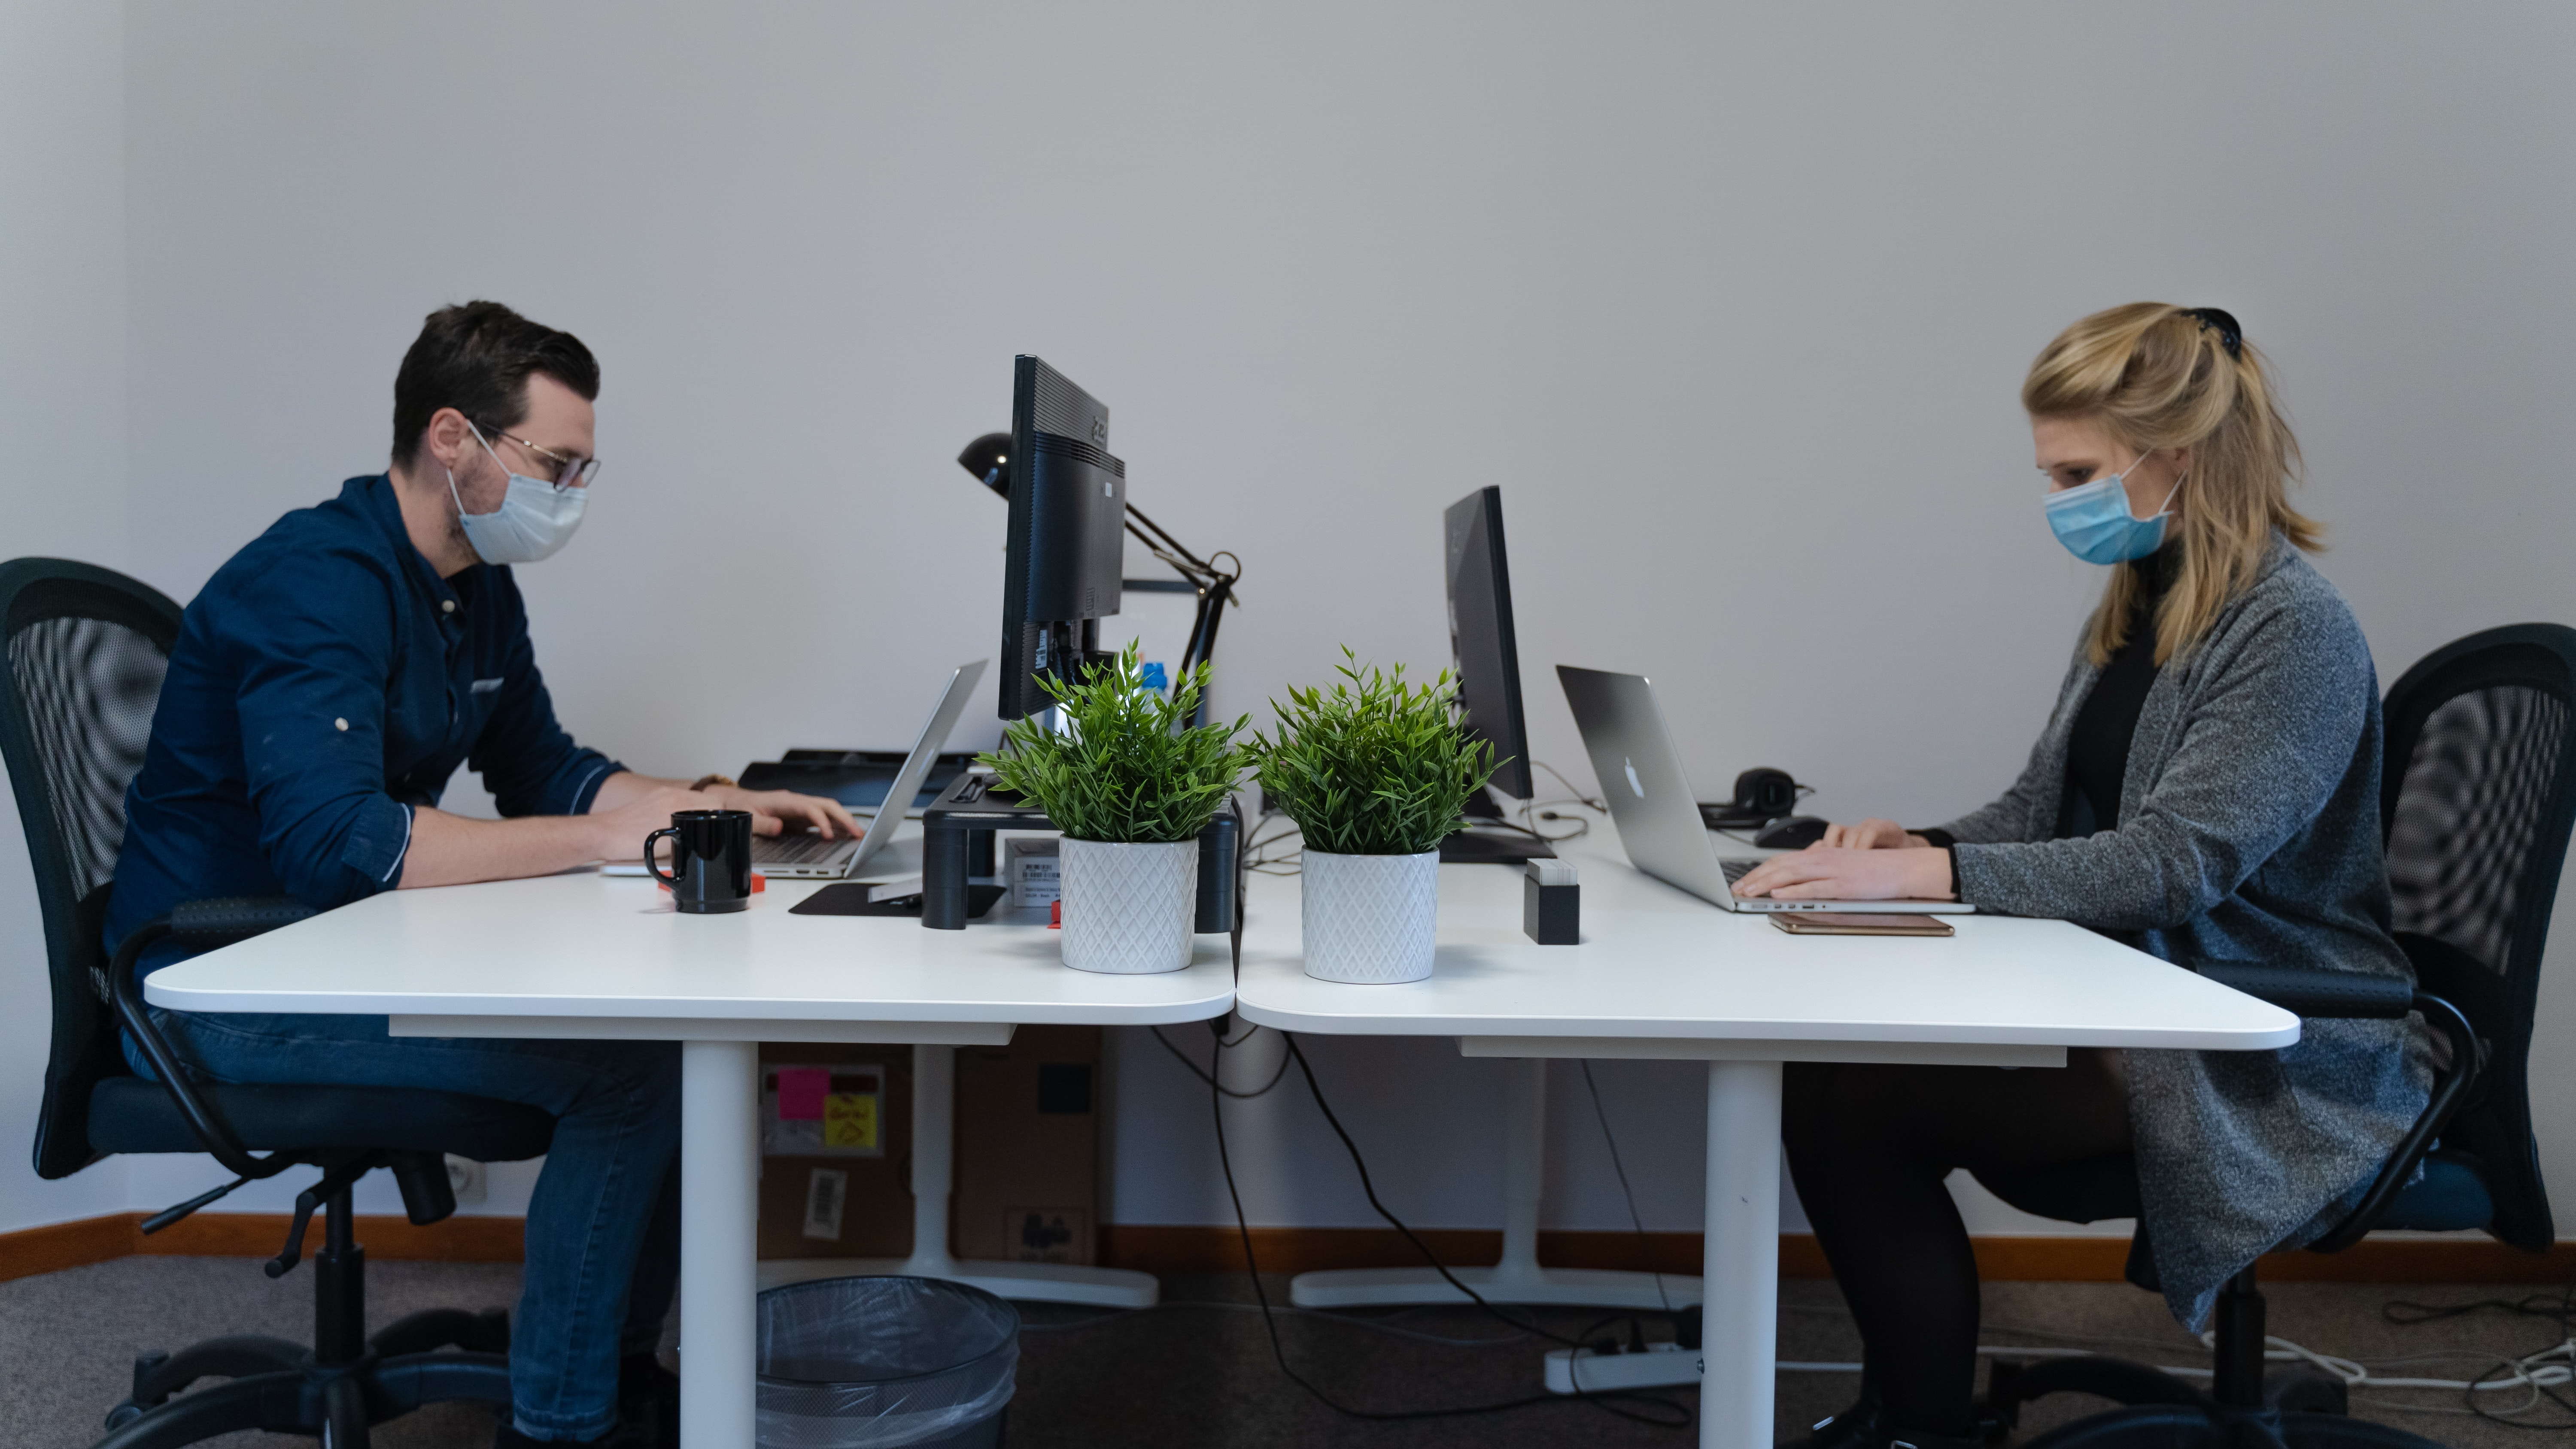 masked employees sitting in office workplace with computers